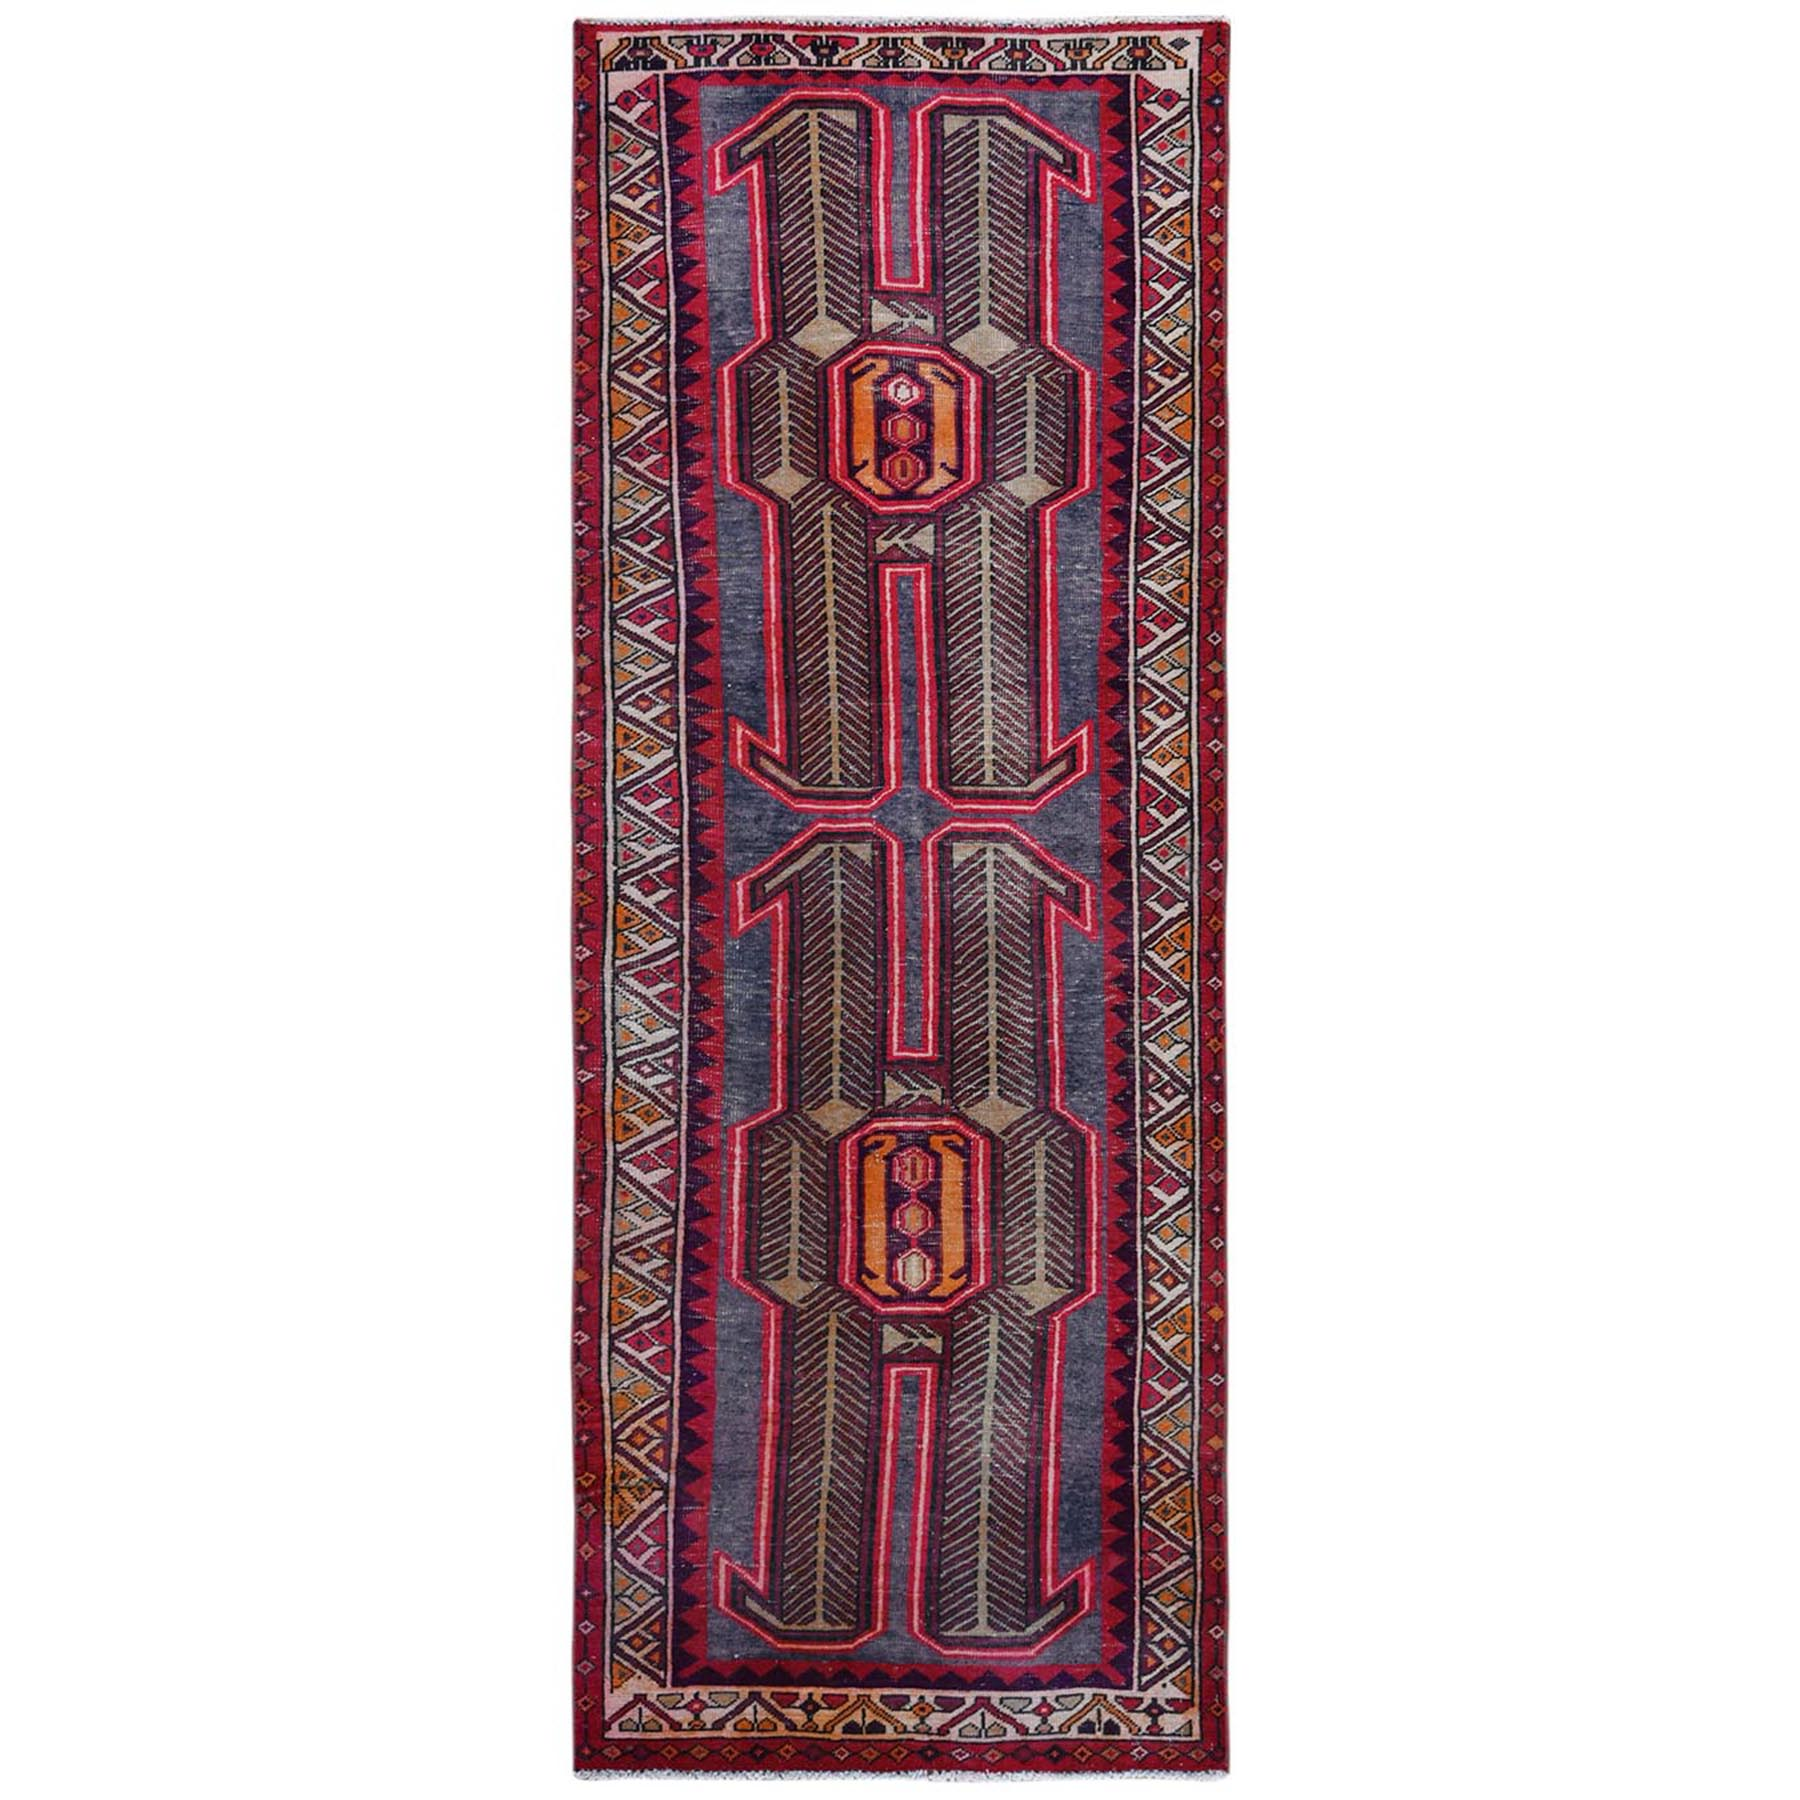 Fetneh Collection And Vintage Overdyed Collection Hand Knotted Pink Rug No: 1122080